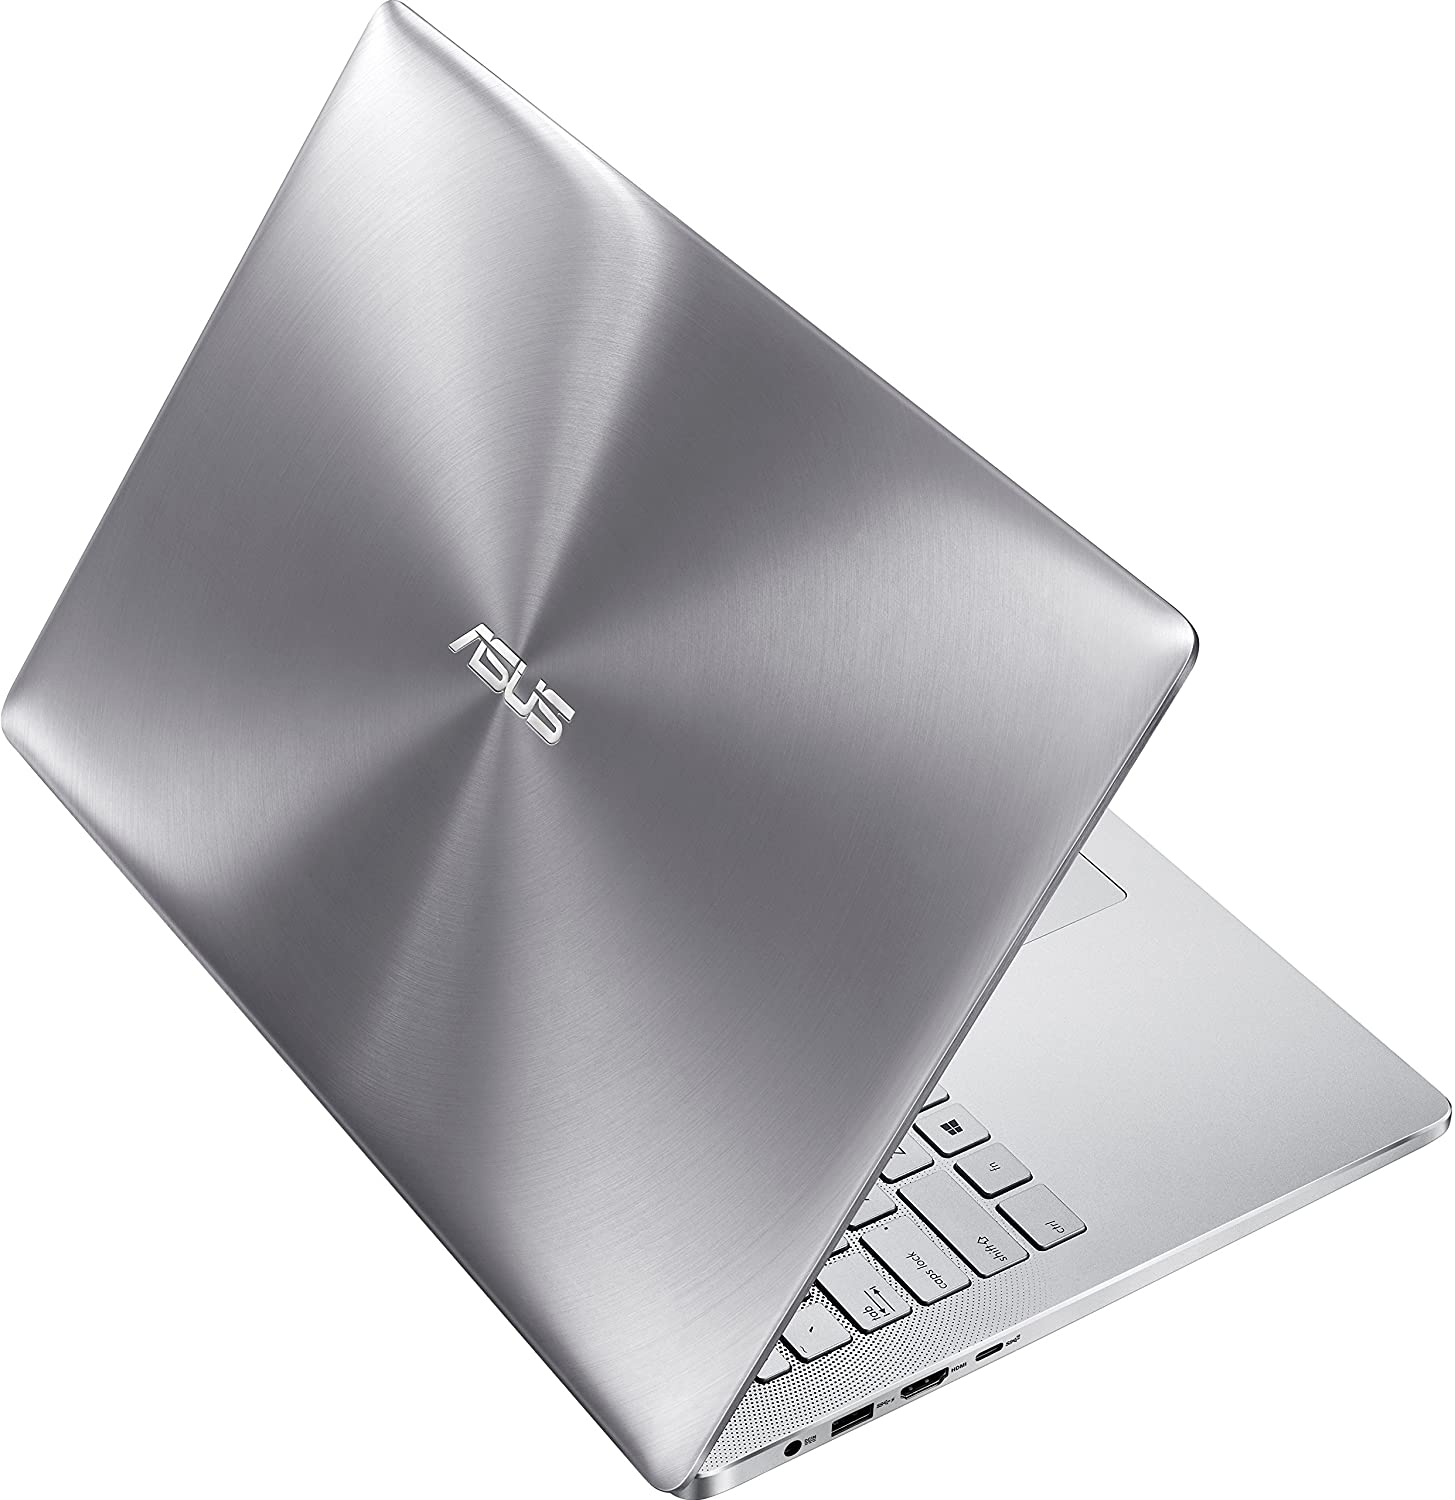 ASUS ZenBook Pro UX501VW 15.6-Inch 4K Touchscreen Laptop (Core i7-6700HQ...